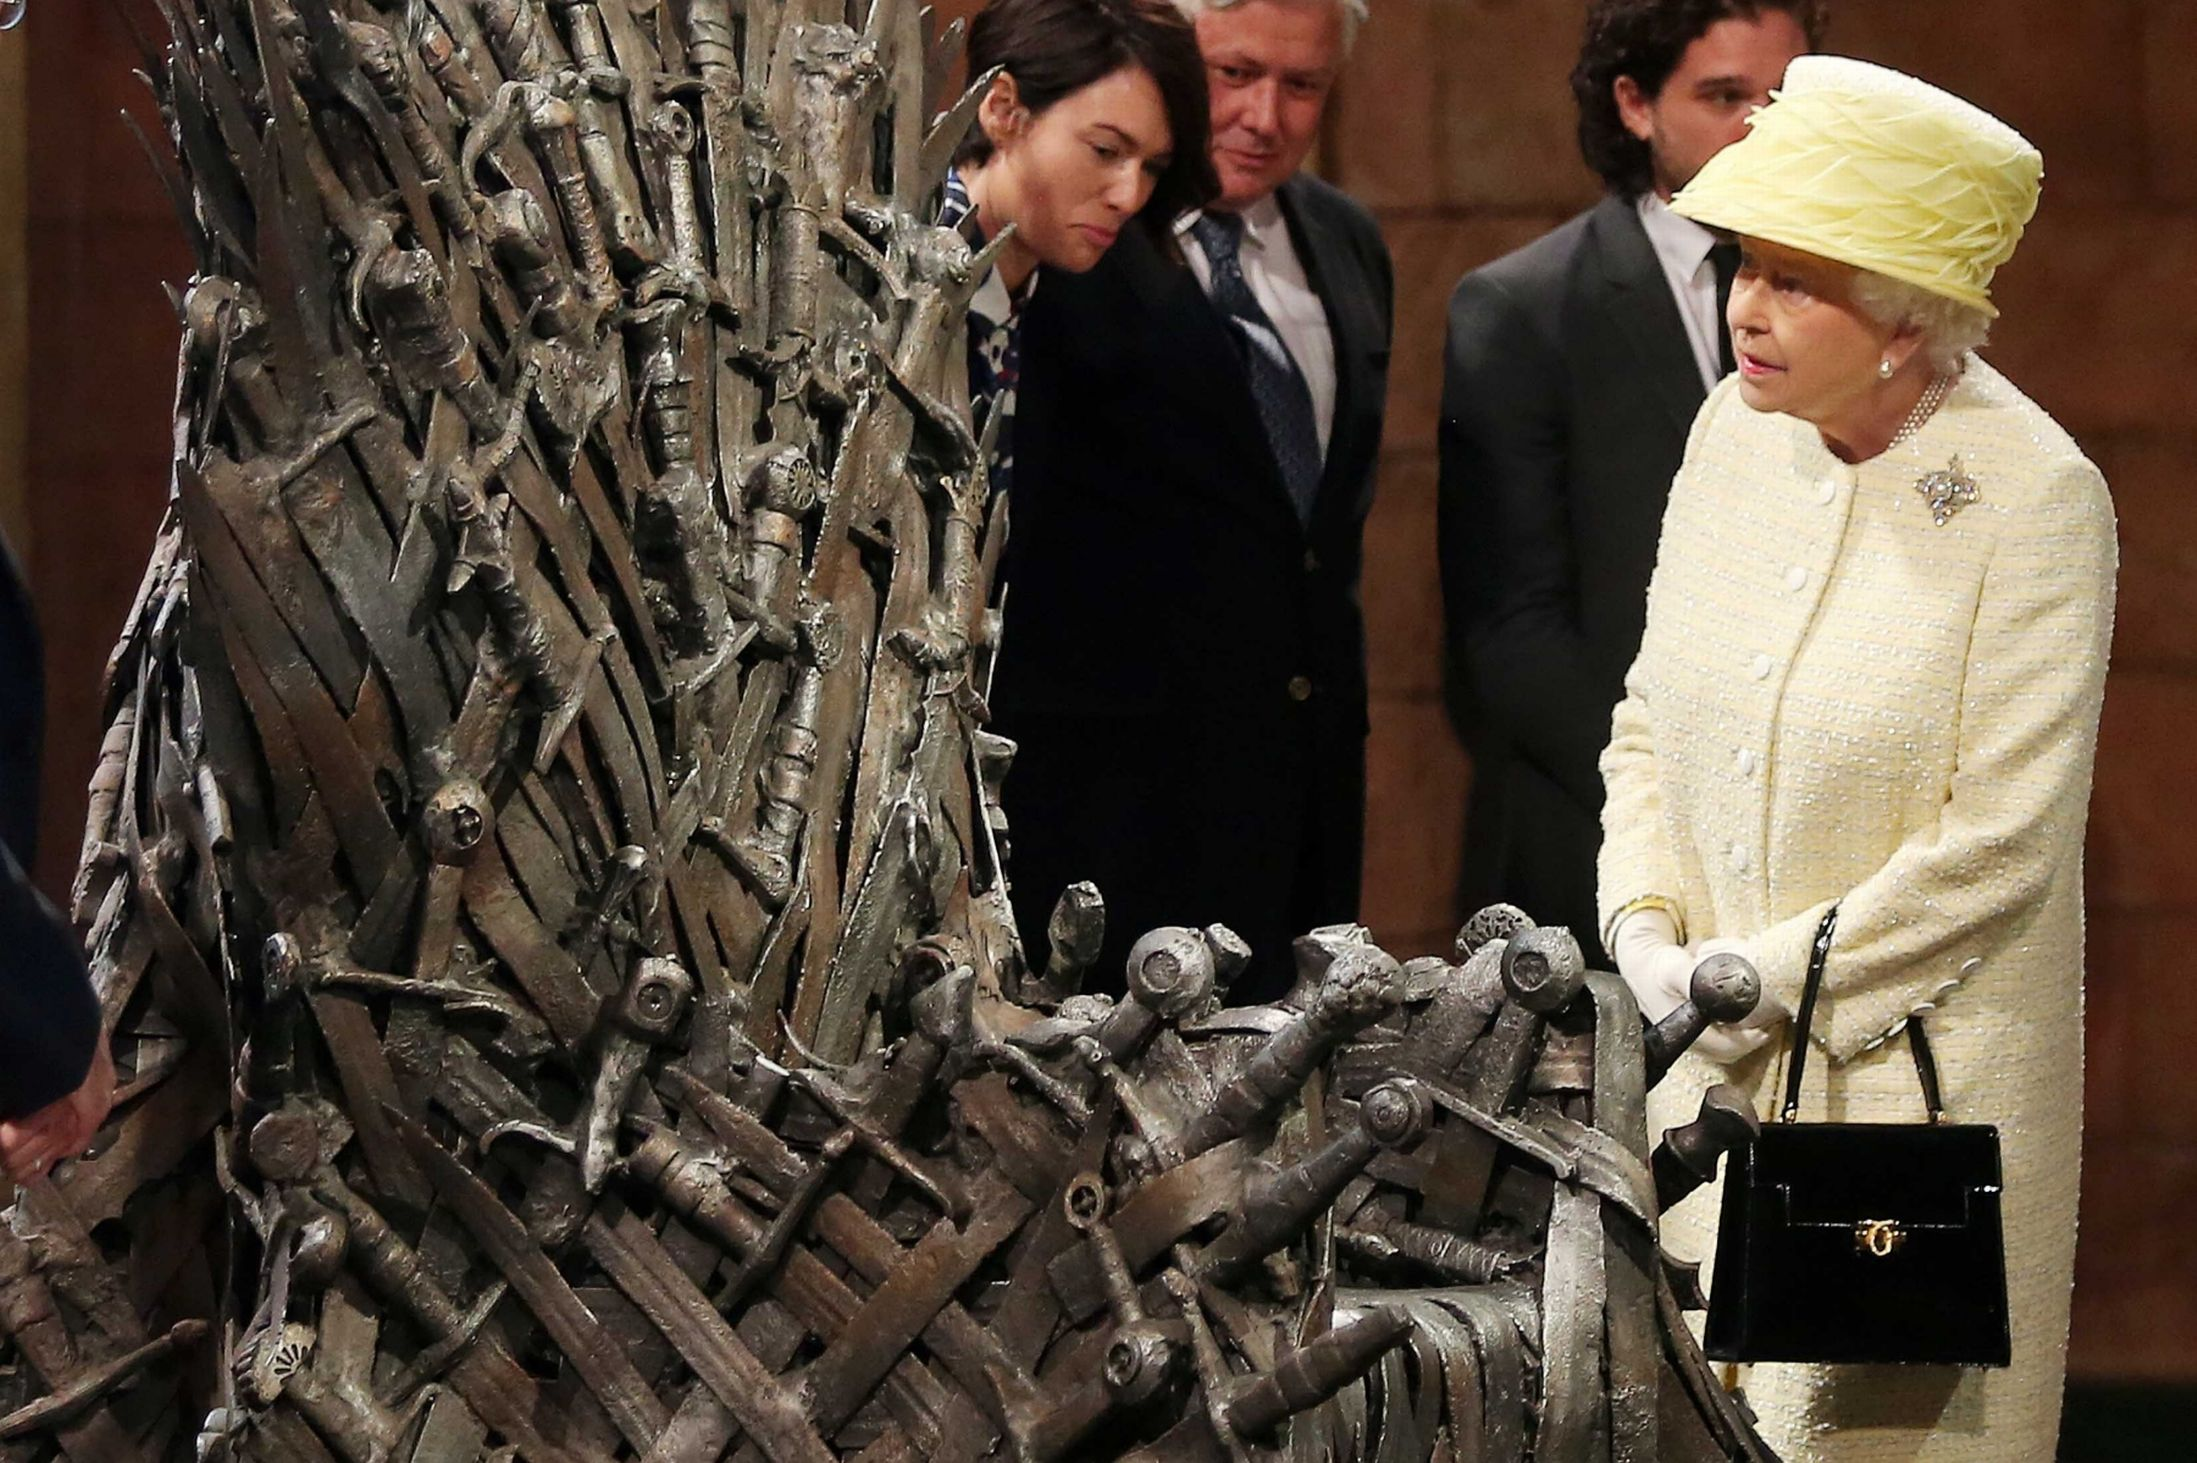 Queen Elizabeth Ii And The Iron Throne Game Of Thrones Wallpapers